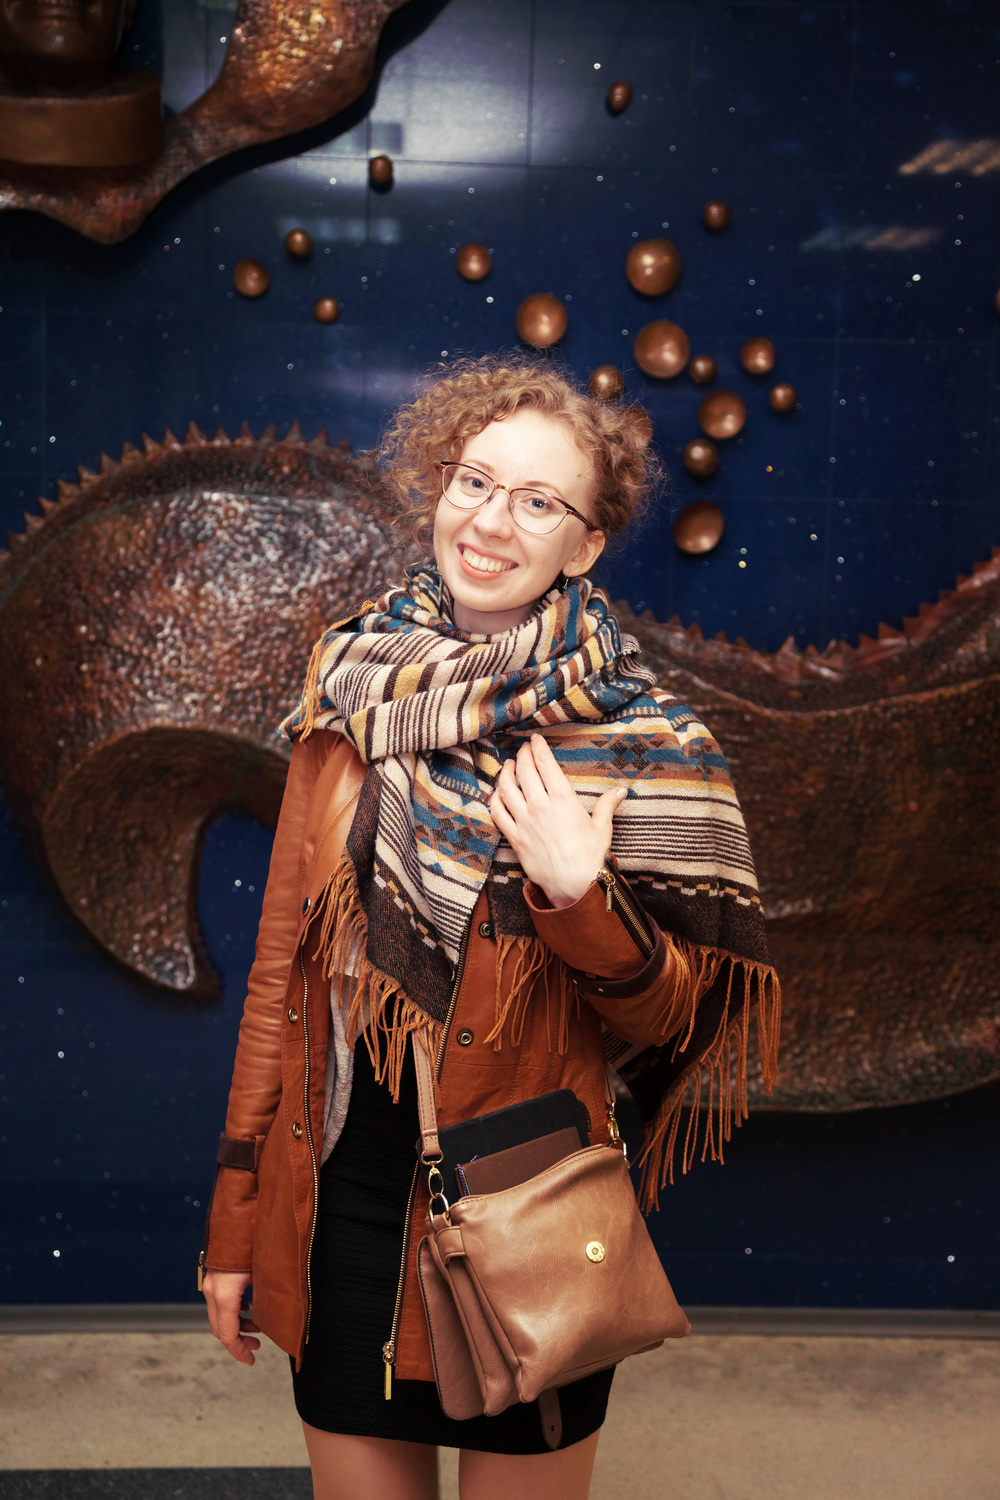 Anastasia Prosochkina at the exhibition in The Cosmonaut Museum, Star City, Moscow (The Cosmonautics day celebration, her space art were exhibited with paintings of the cosmonaut Alexei Leonov)